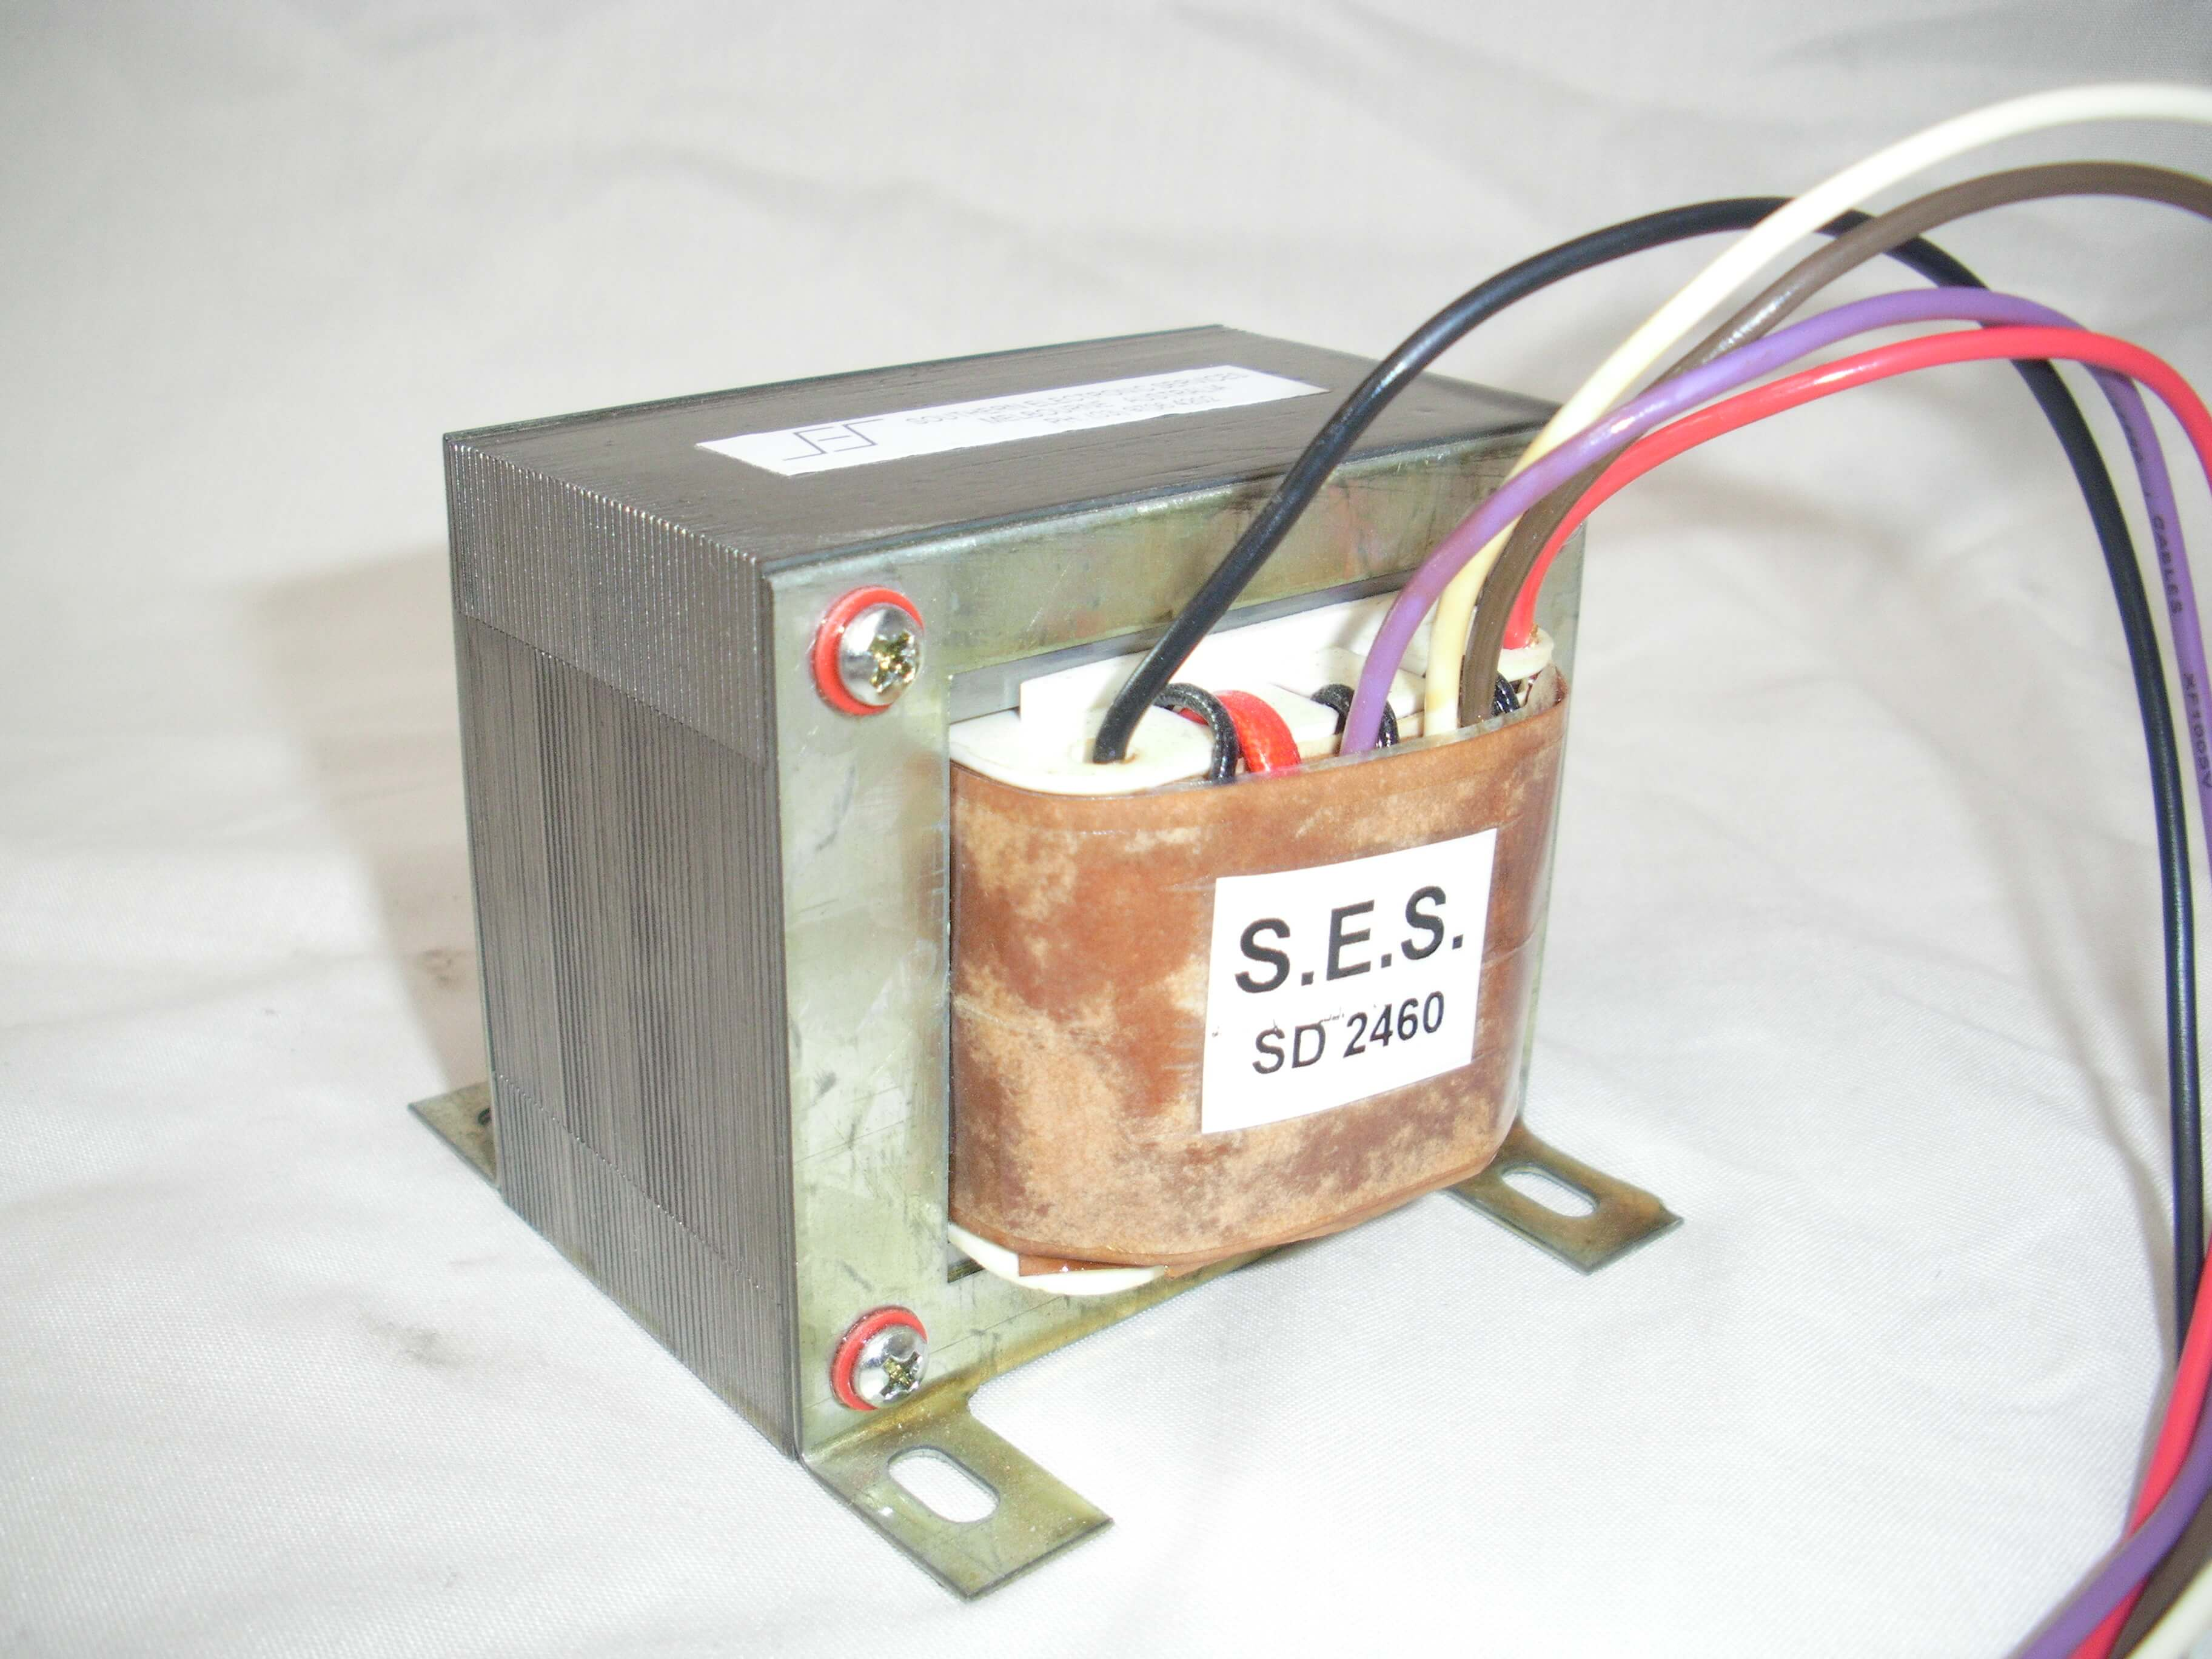 Fan Control Transformer Free Download Center Relay And Wiring Diagram Auto Transformers Adapt Imported Devices To Australian Power